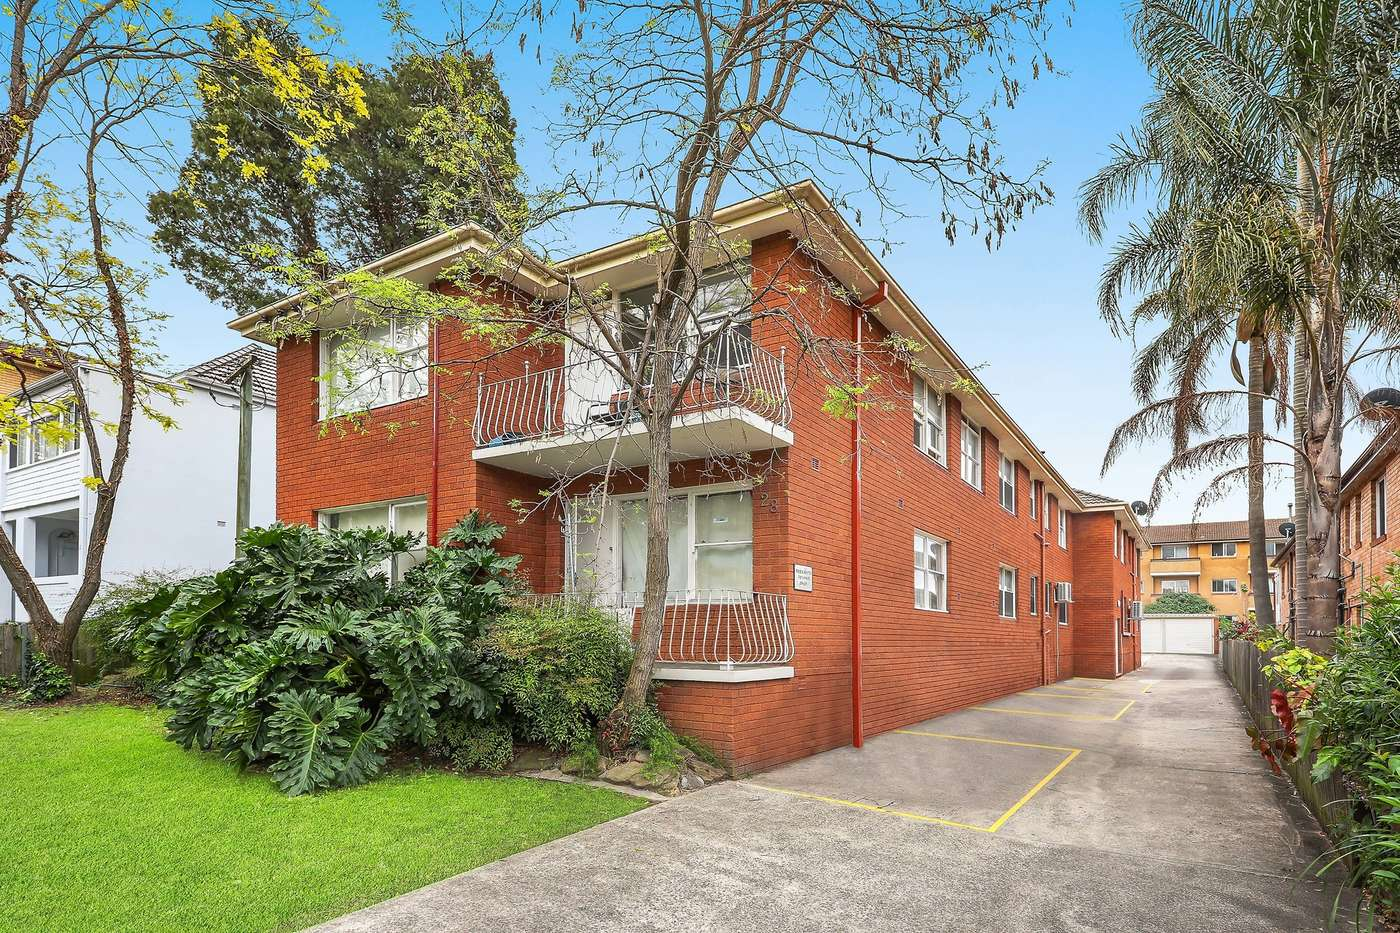 Main view of Homely apartment listing, 2/28 Orpington Street, Ashfield, NSW 2131